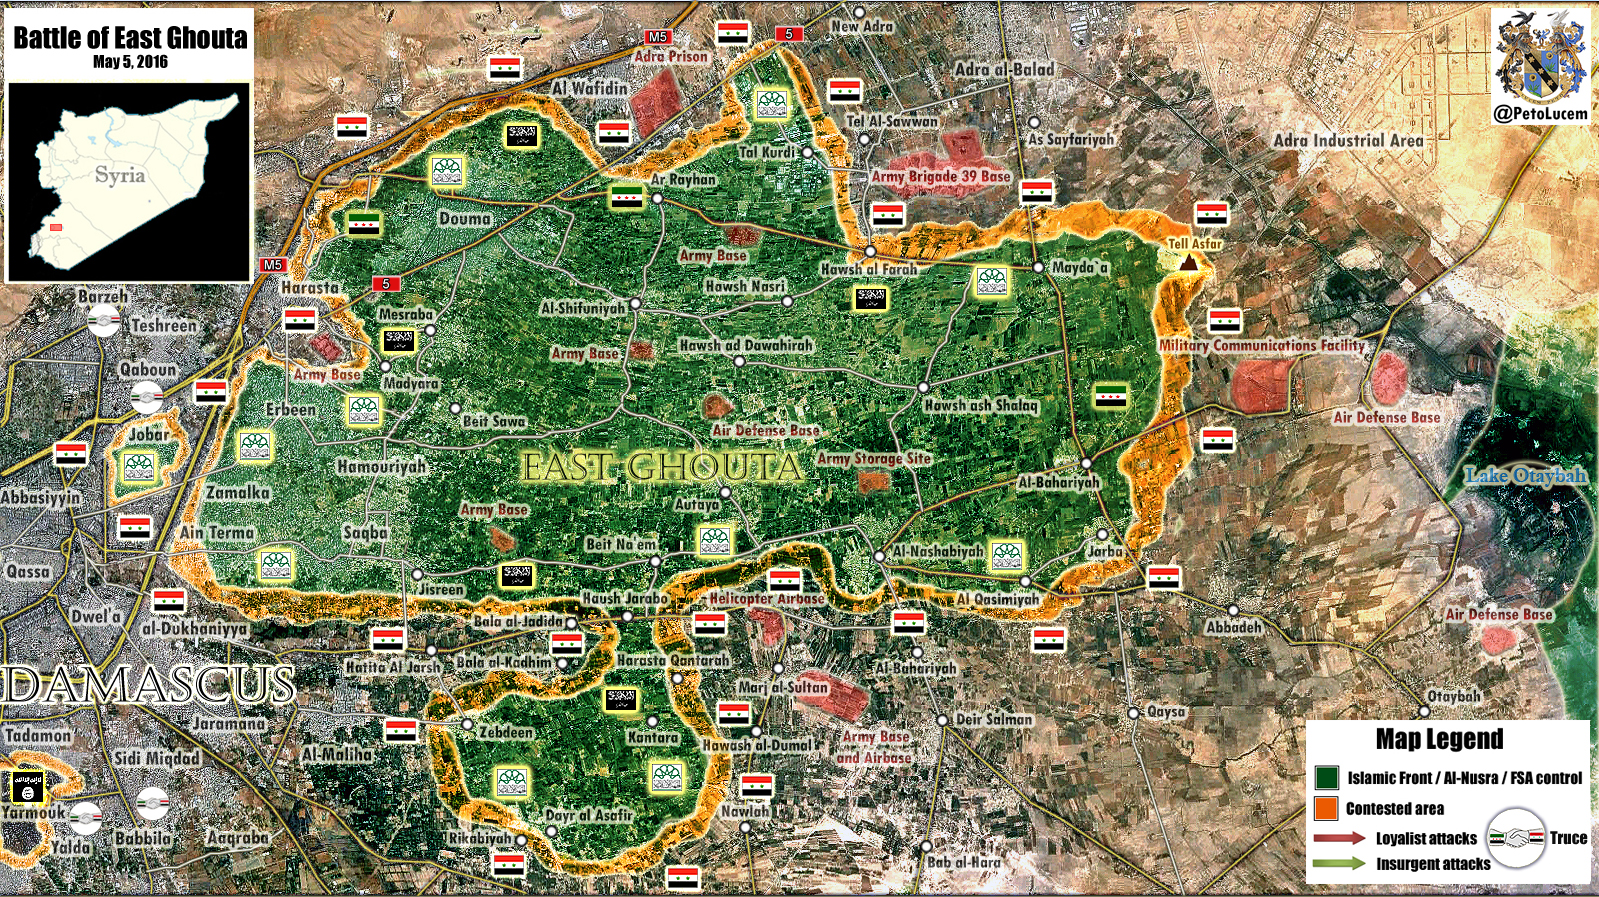 Syria: Military Situation in East Ghouta, Damasucs